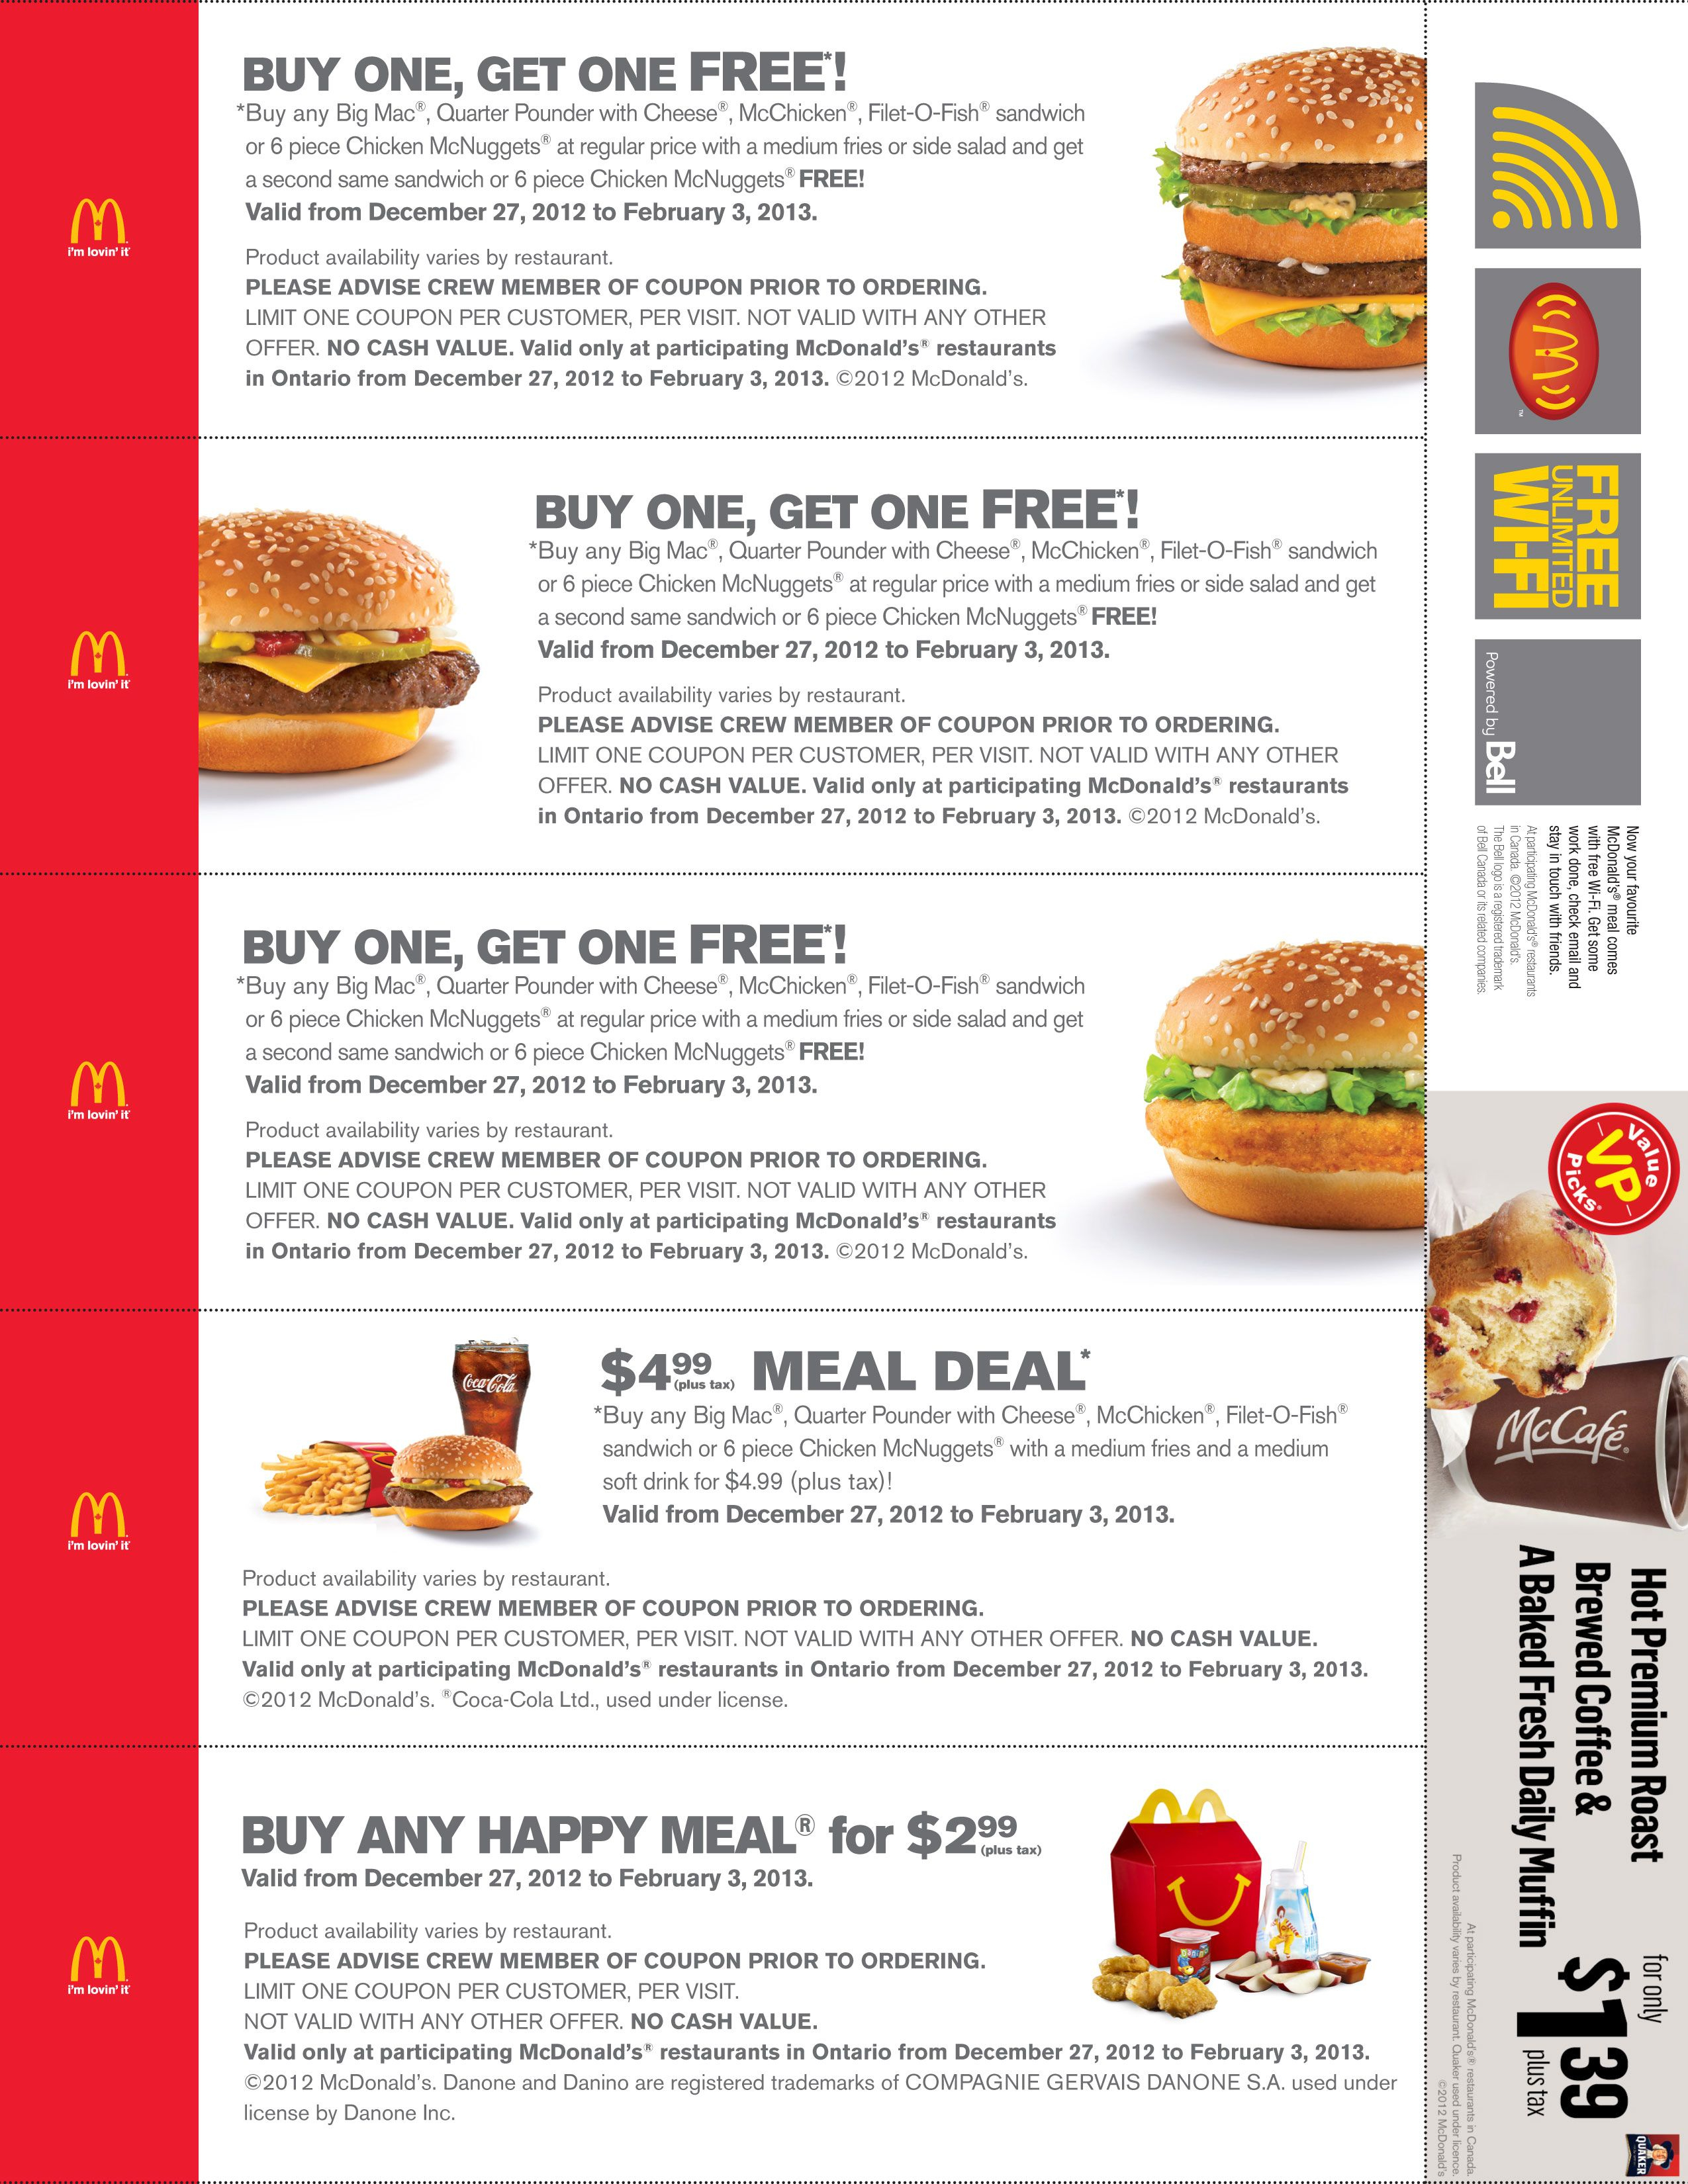 Printable Mcdonald Coupons 2014 | Stuff To Buy | Coupons, Printable - Free Mcdonalds Smoothie Printable Coupon